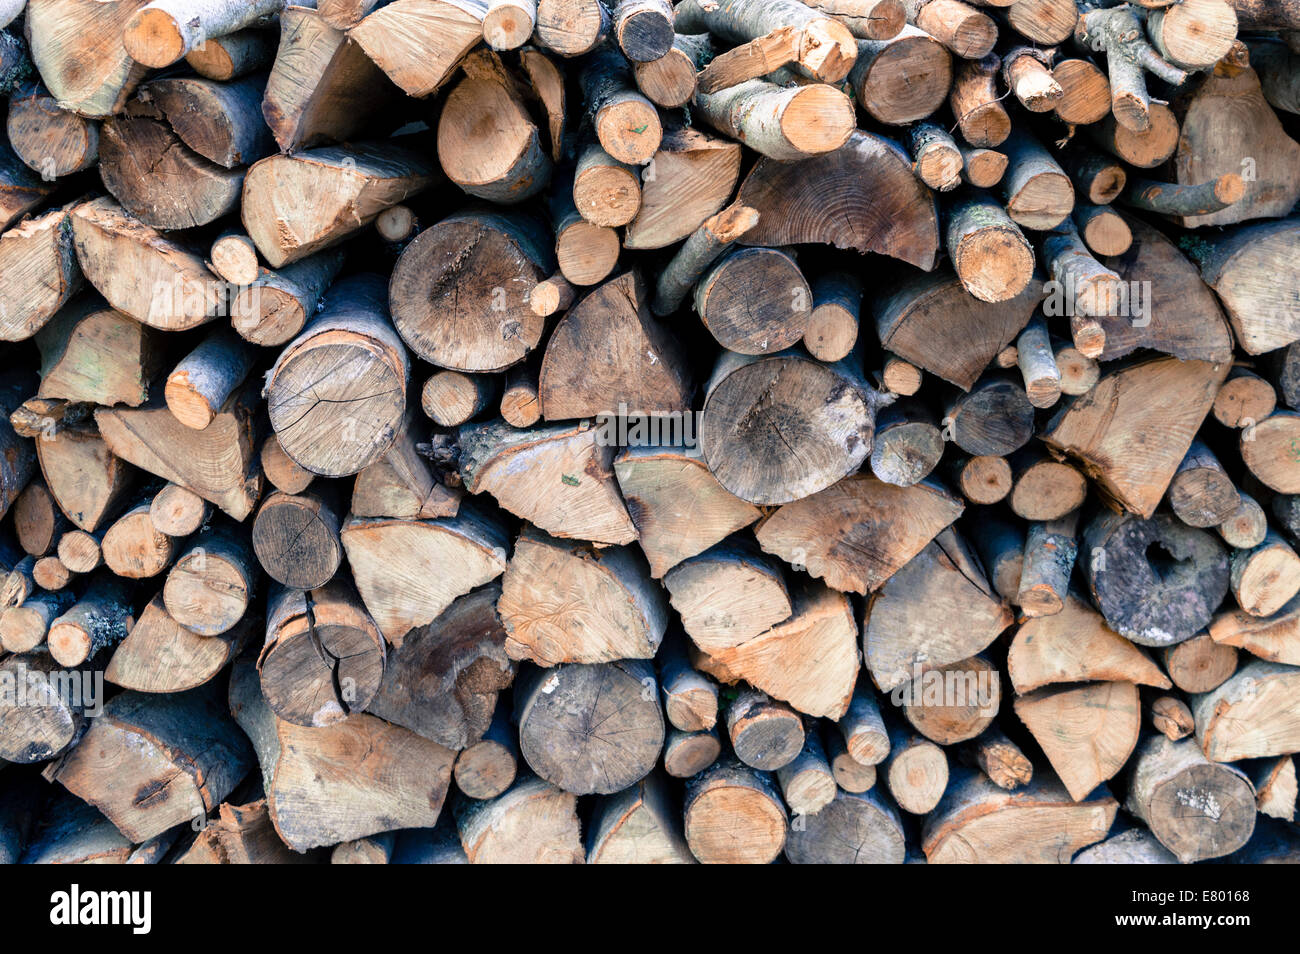 Pile of Wood - Stock Image